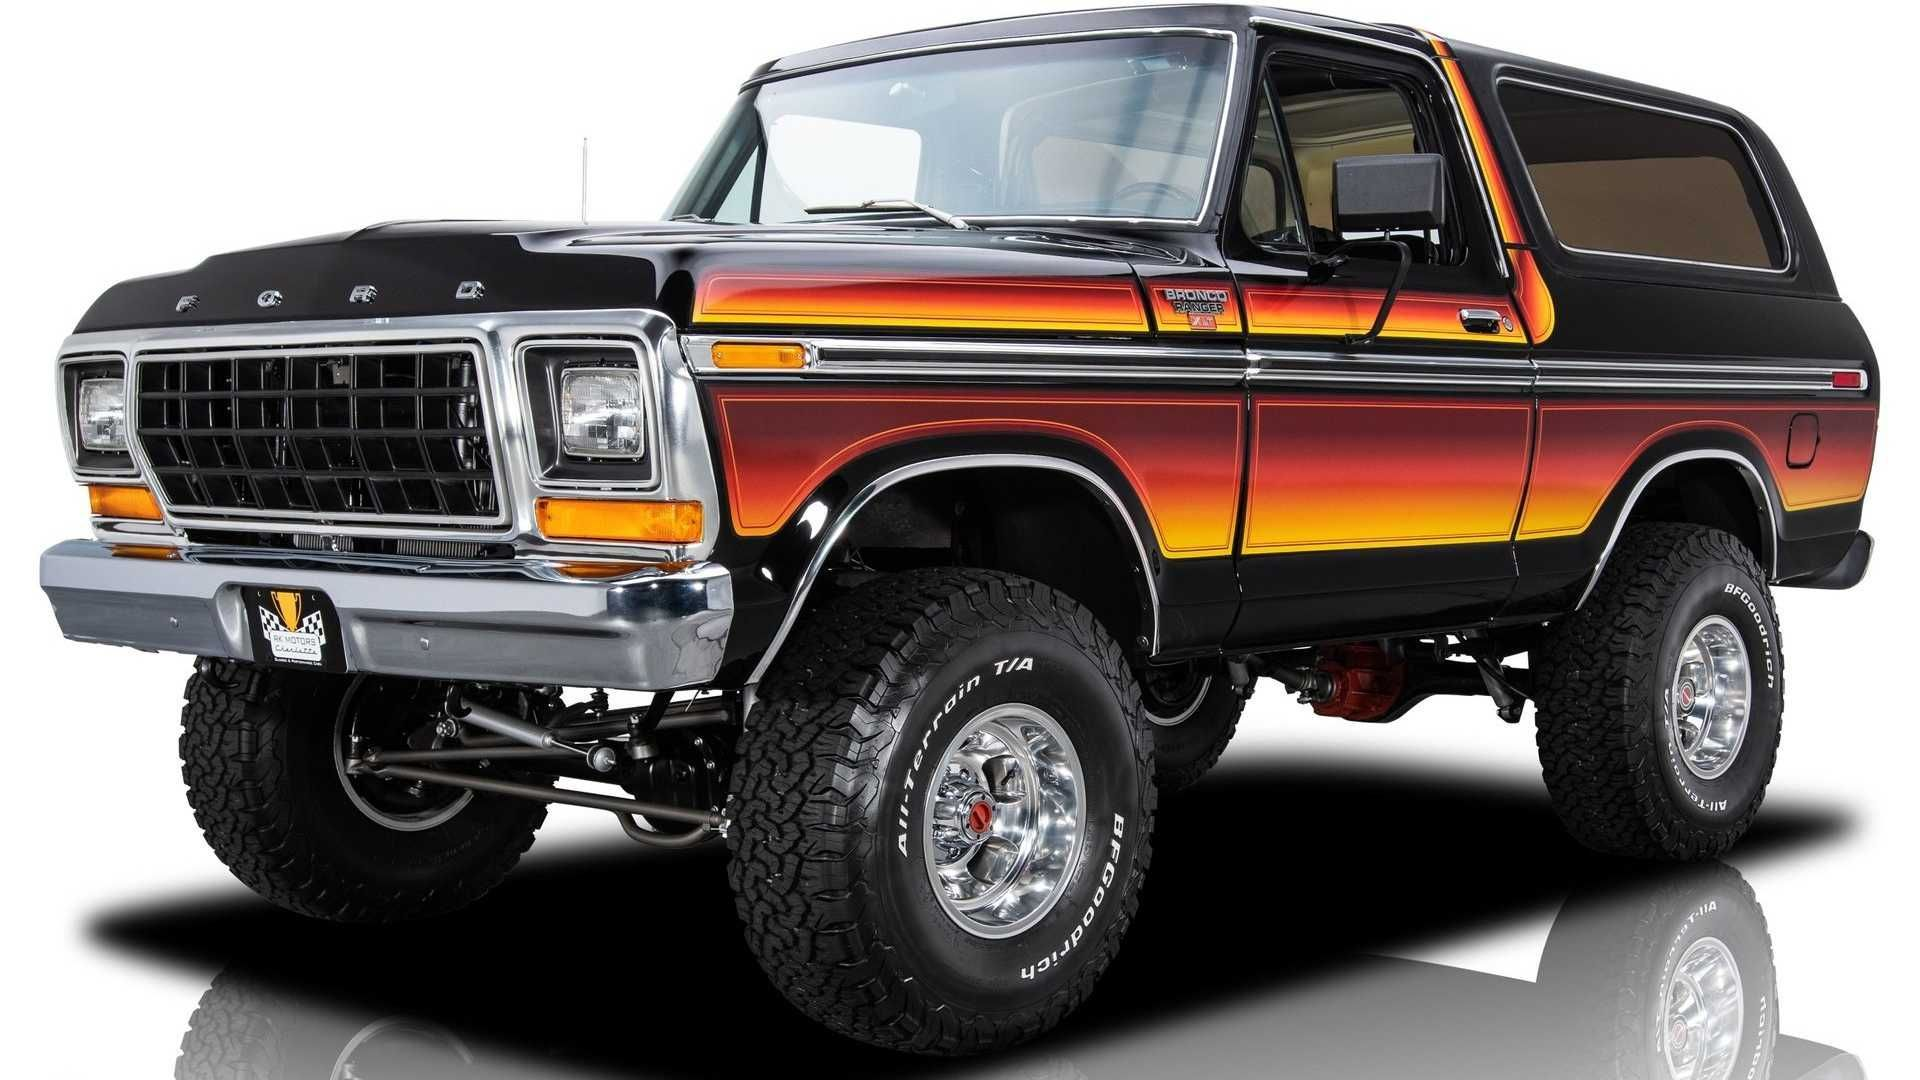 The Road Less Traveled Awaits In A 1979 Ford Bronco Ranger Xlt 1979 Ford Bronco Ford Bronco Classic Ford Trucks